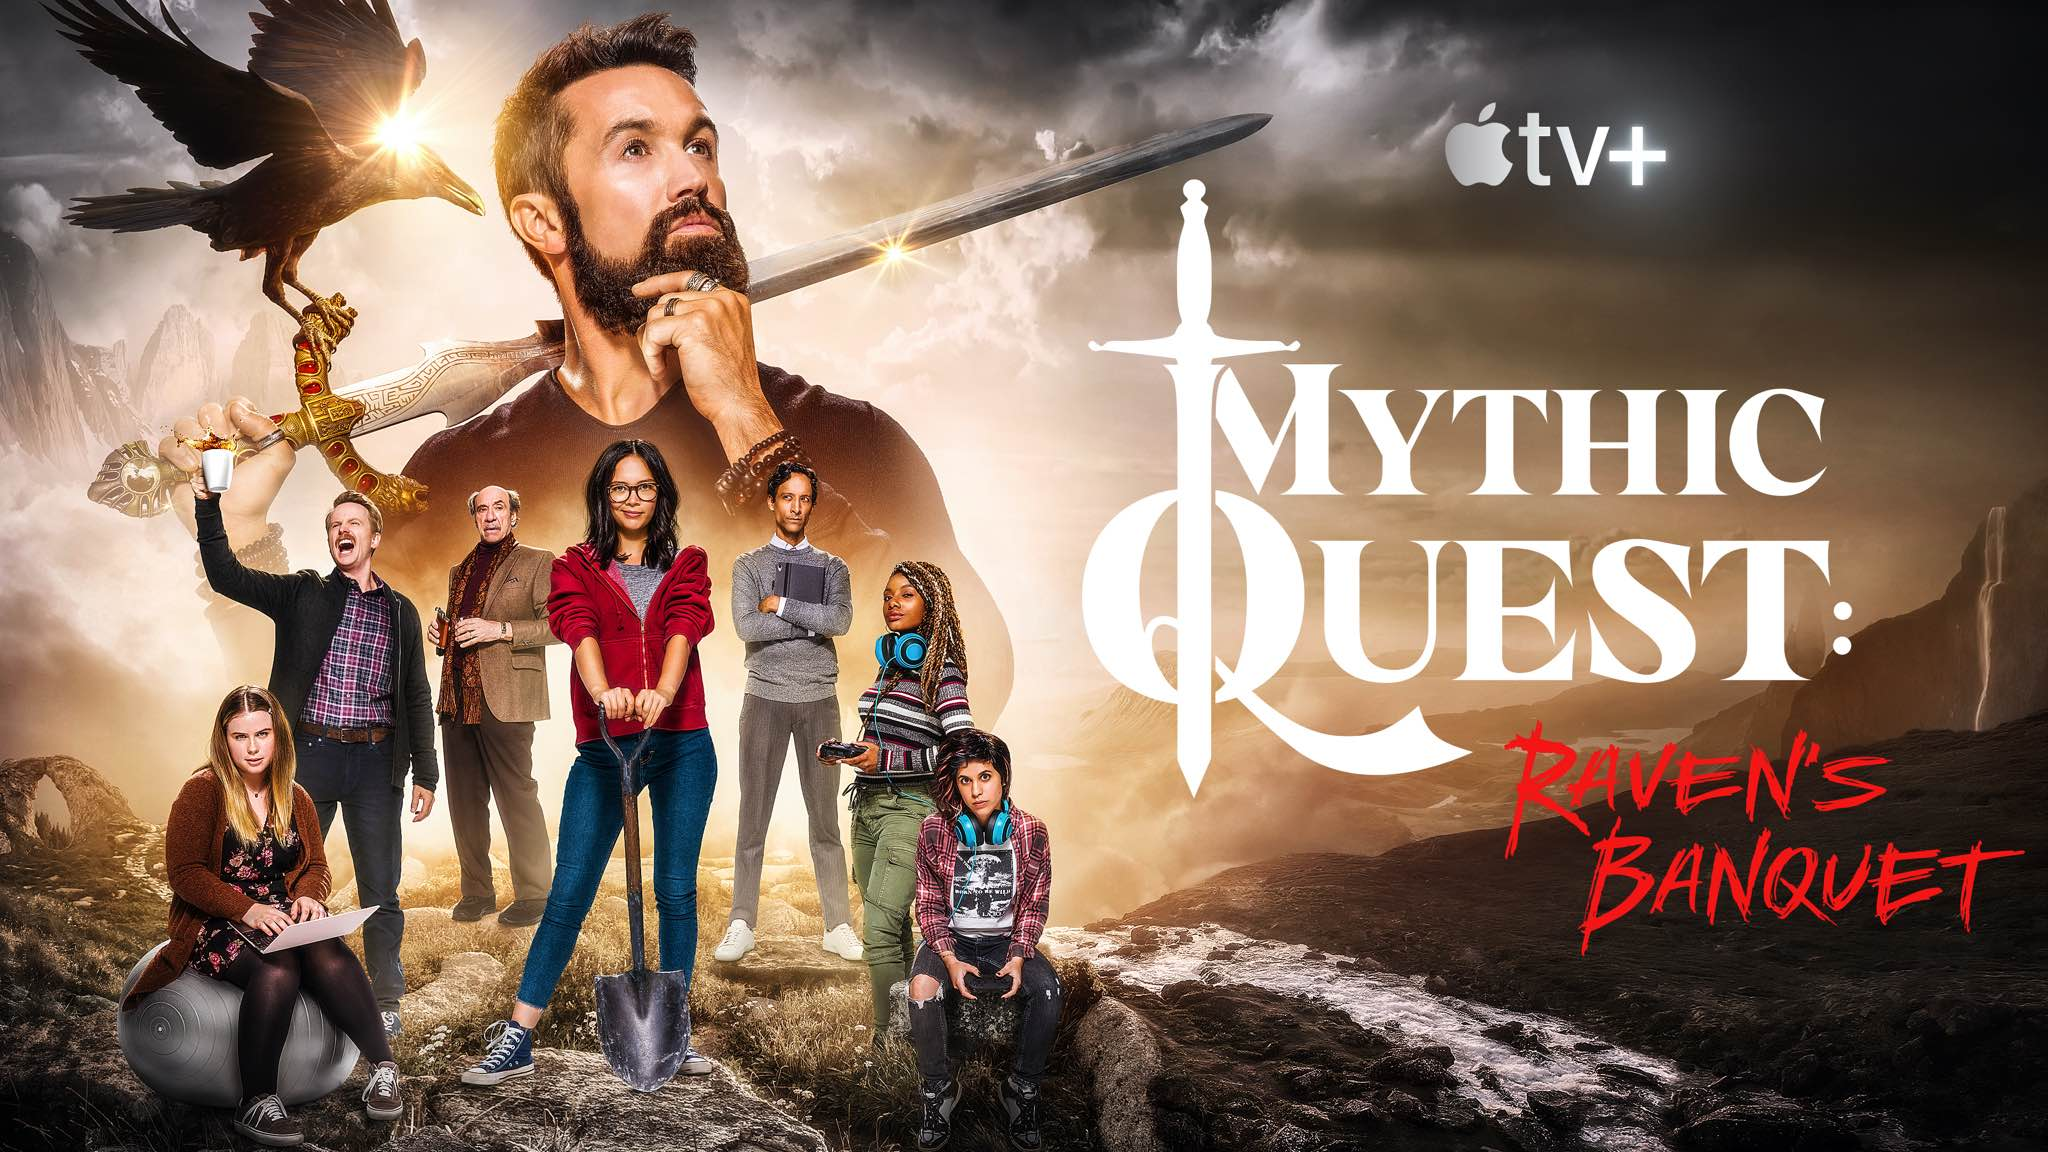 Apple TV+ 'Mythic Quest' to be Shown on PAX South